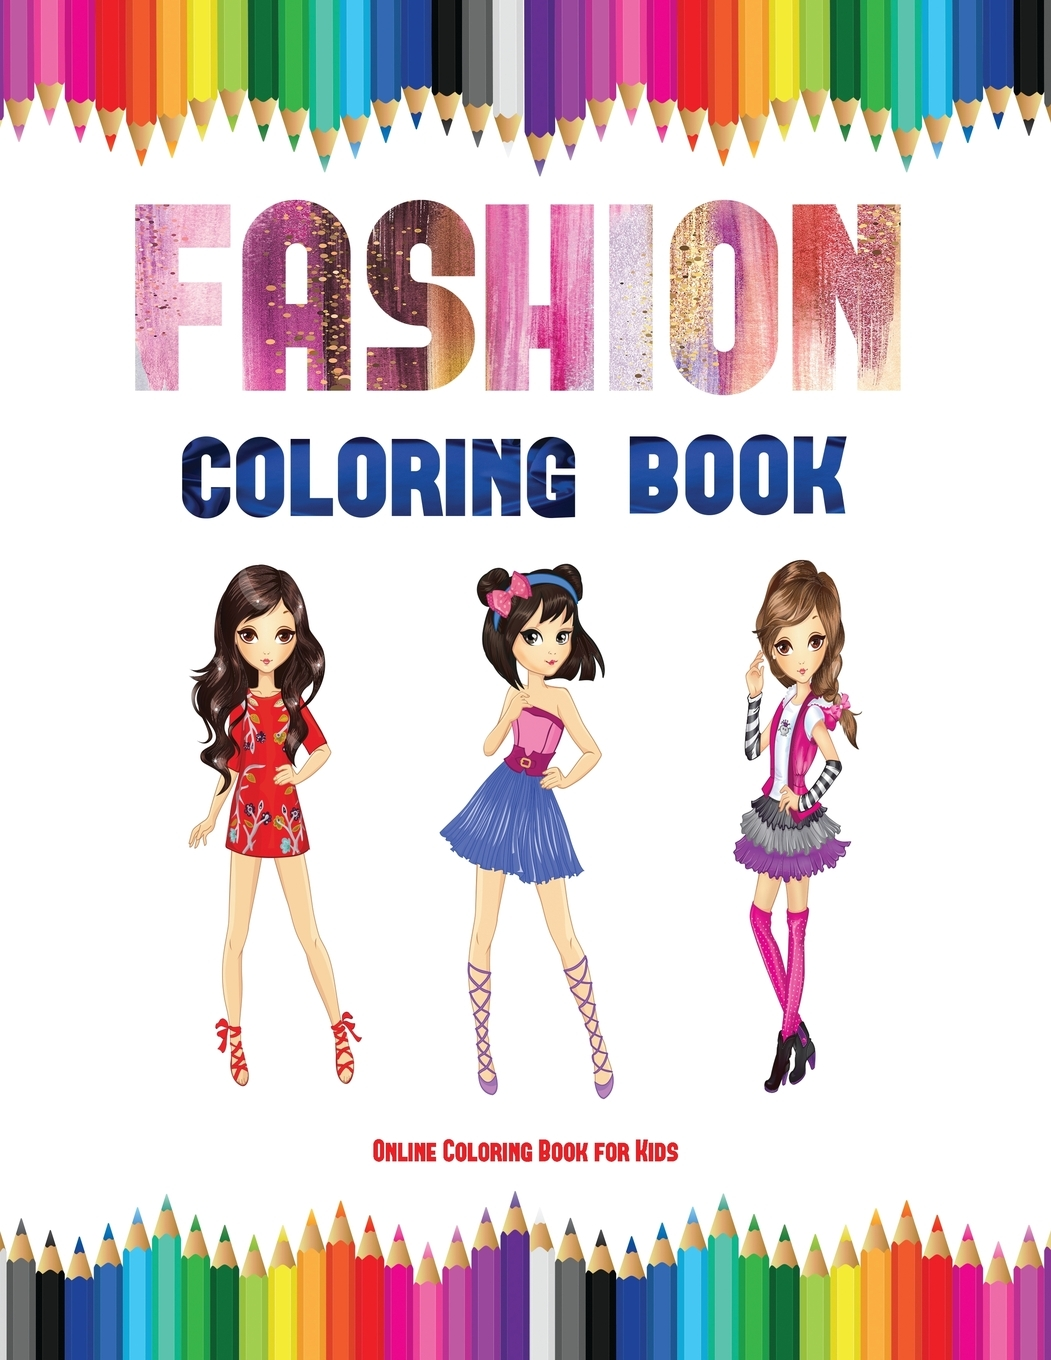 Online Coloring Book For Kids: Online Coloring Book For Kids (Fashion Coloring  Book) : 40 Fashion Coloring Pages (Series #2) (Paperback) - Walmart.com -  Walmart.com